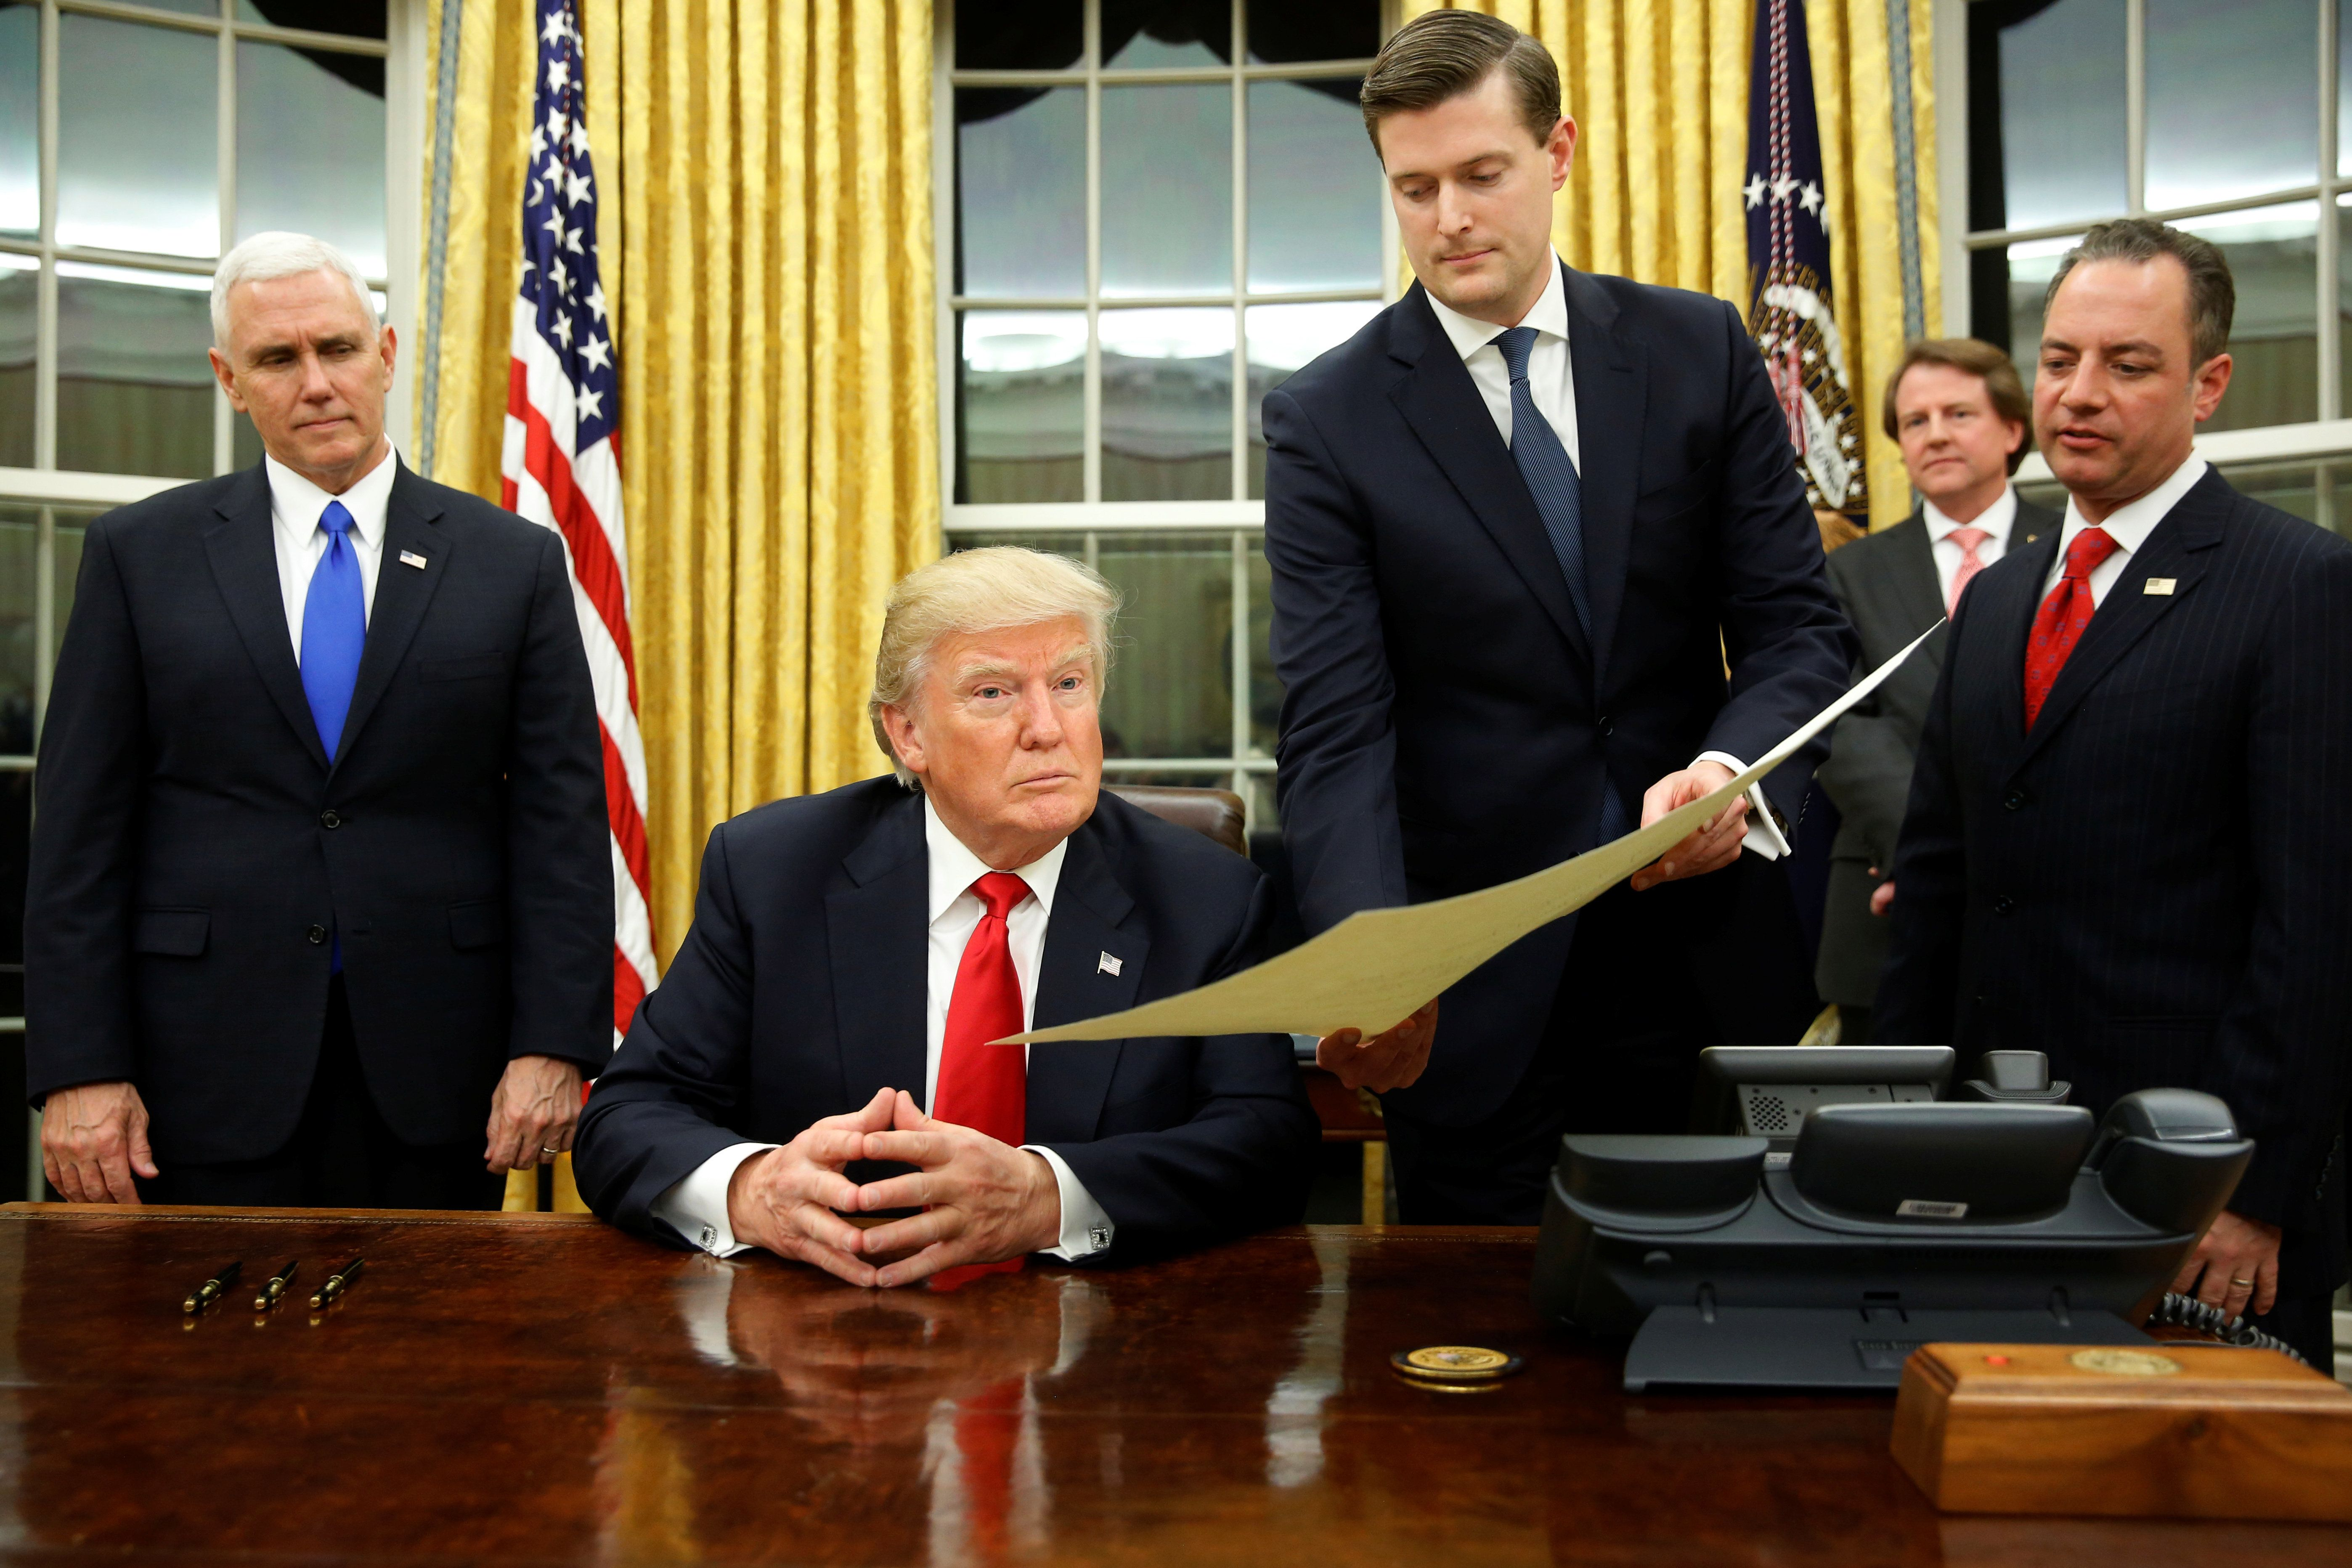 White House Staff Secretary Rob Porter (2nd R) gives U.S. President Donald Trump, flanked by Vice President Mike Pence (L) and Chief of Staff Reince Priebus (R) the document to confirming James Mattis his Secretary of Defense, his first signing in the Oval Office in Washington, U.S. January 20, 2017. REUTERS/Jonathan Ernst